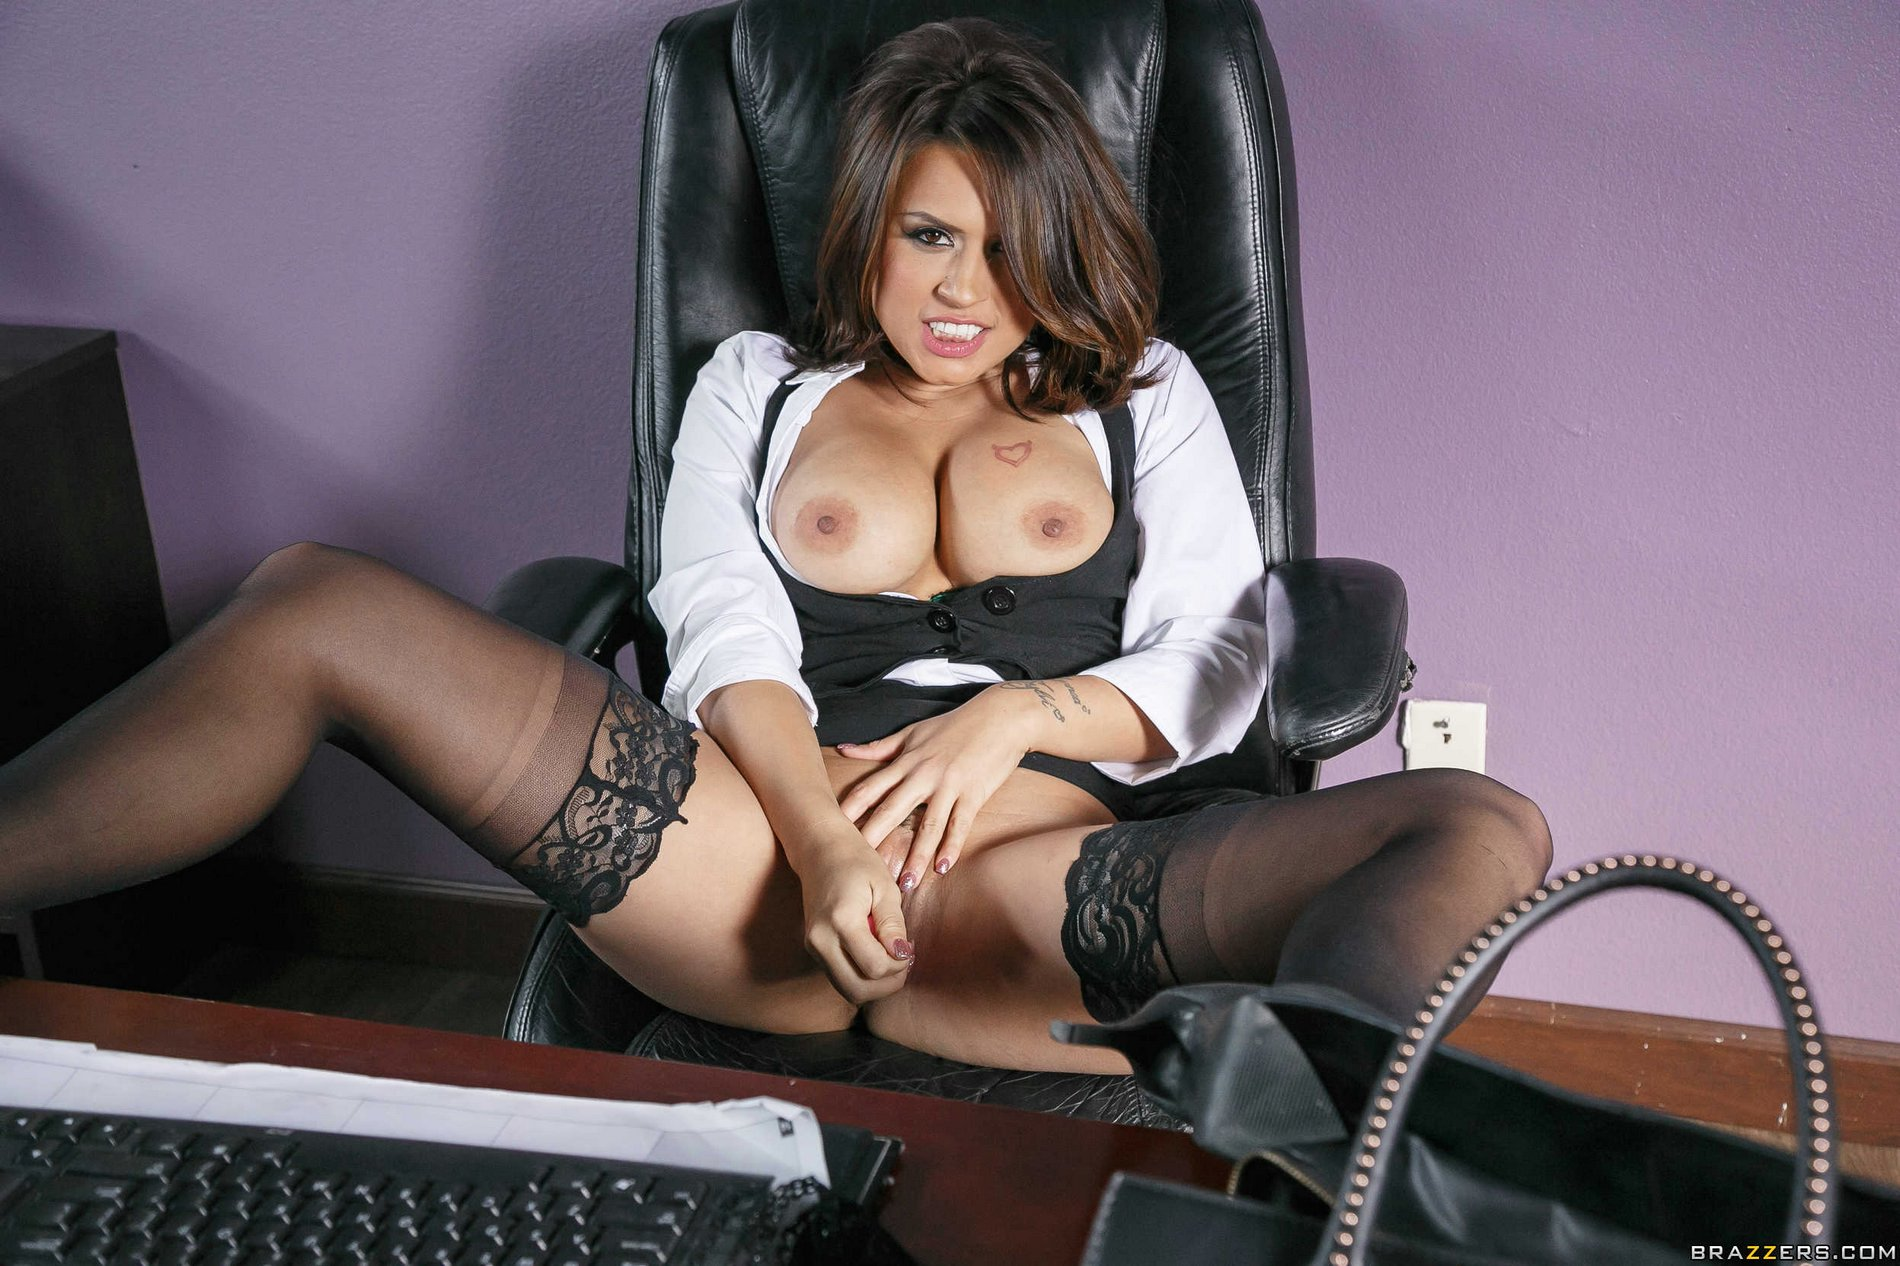 Adult toys and videos